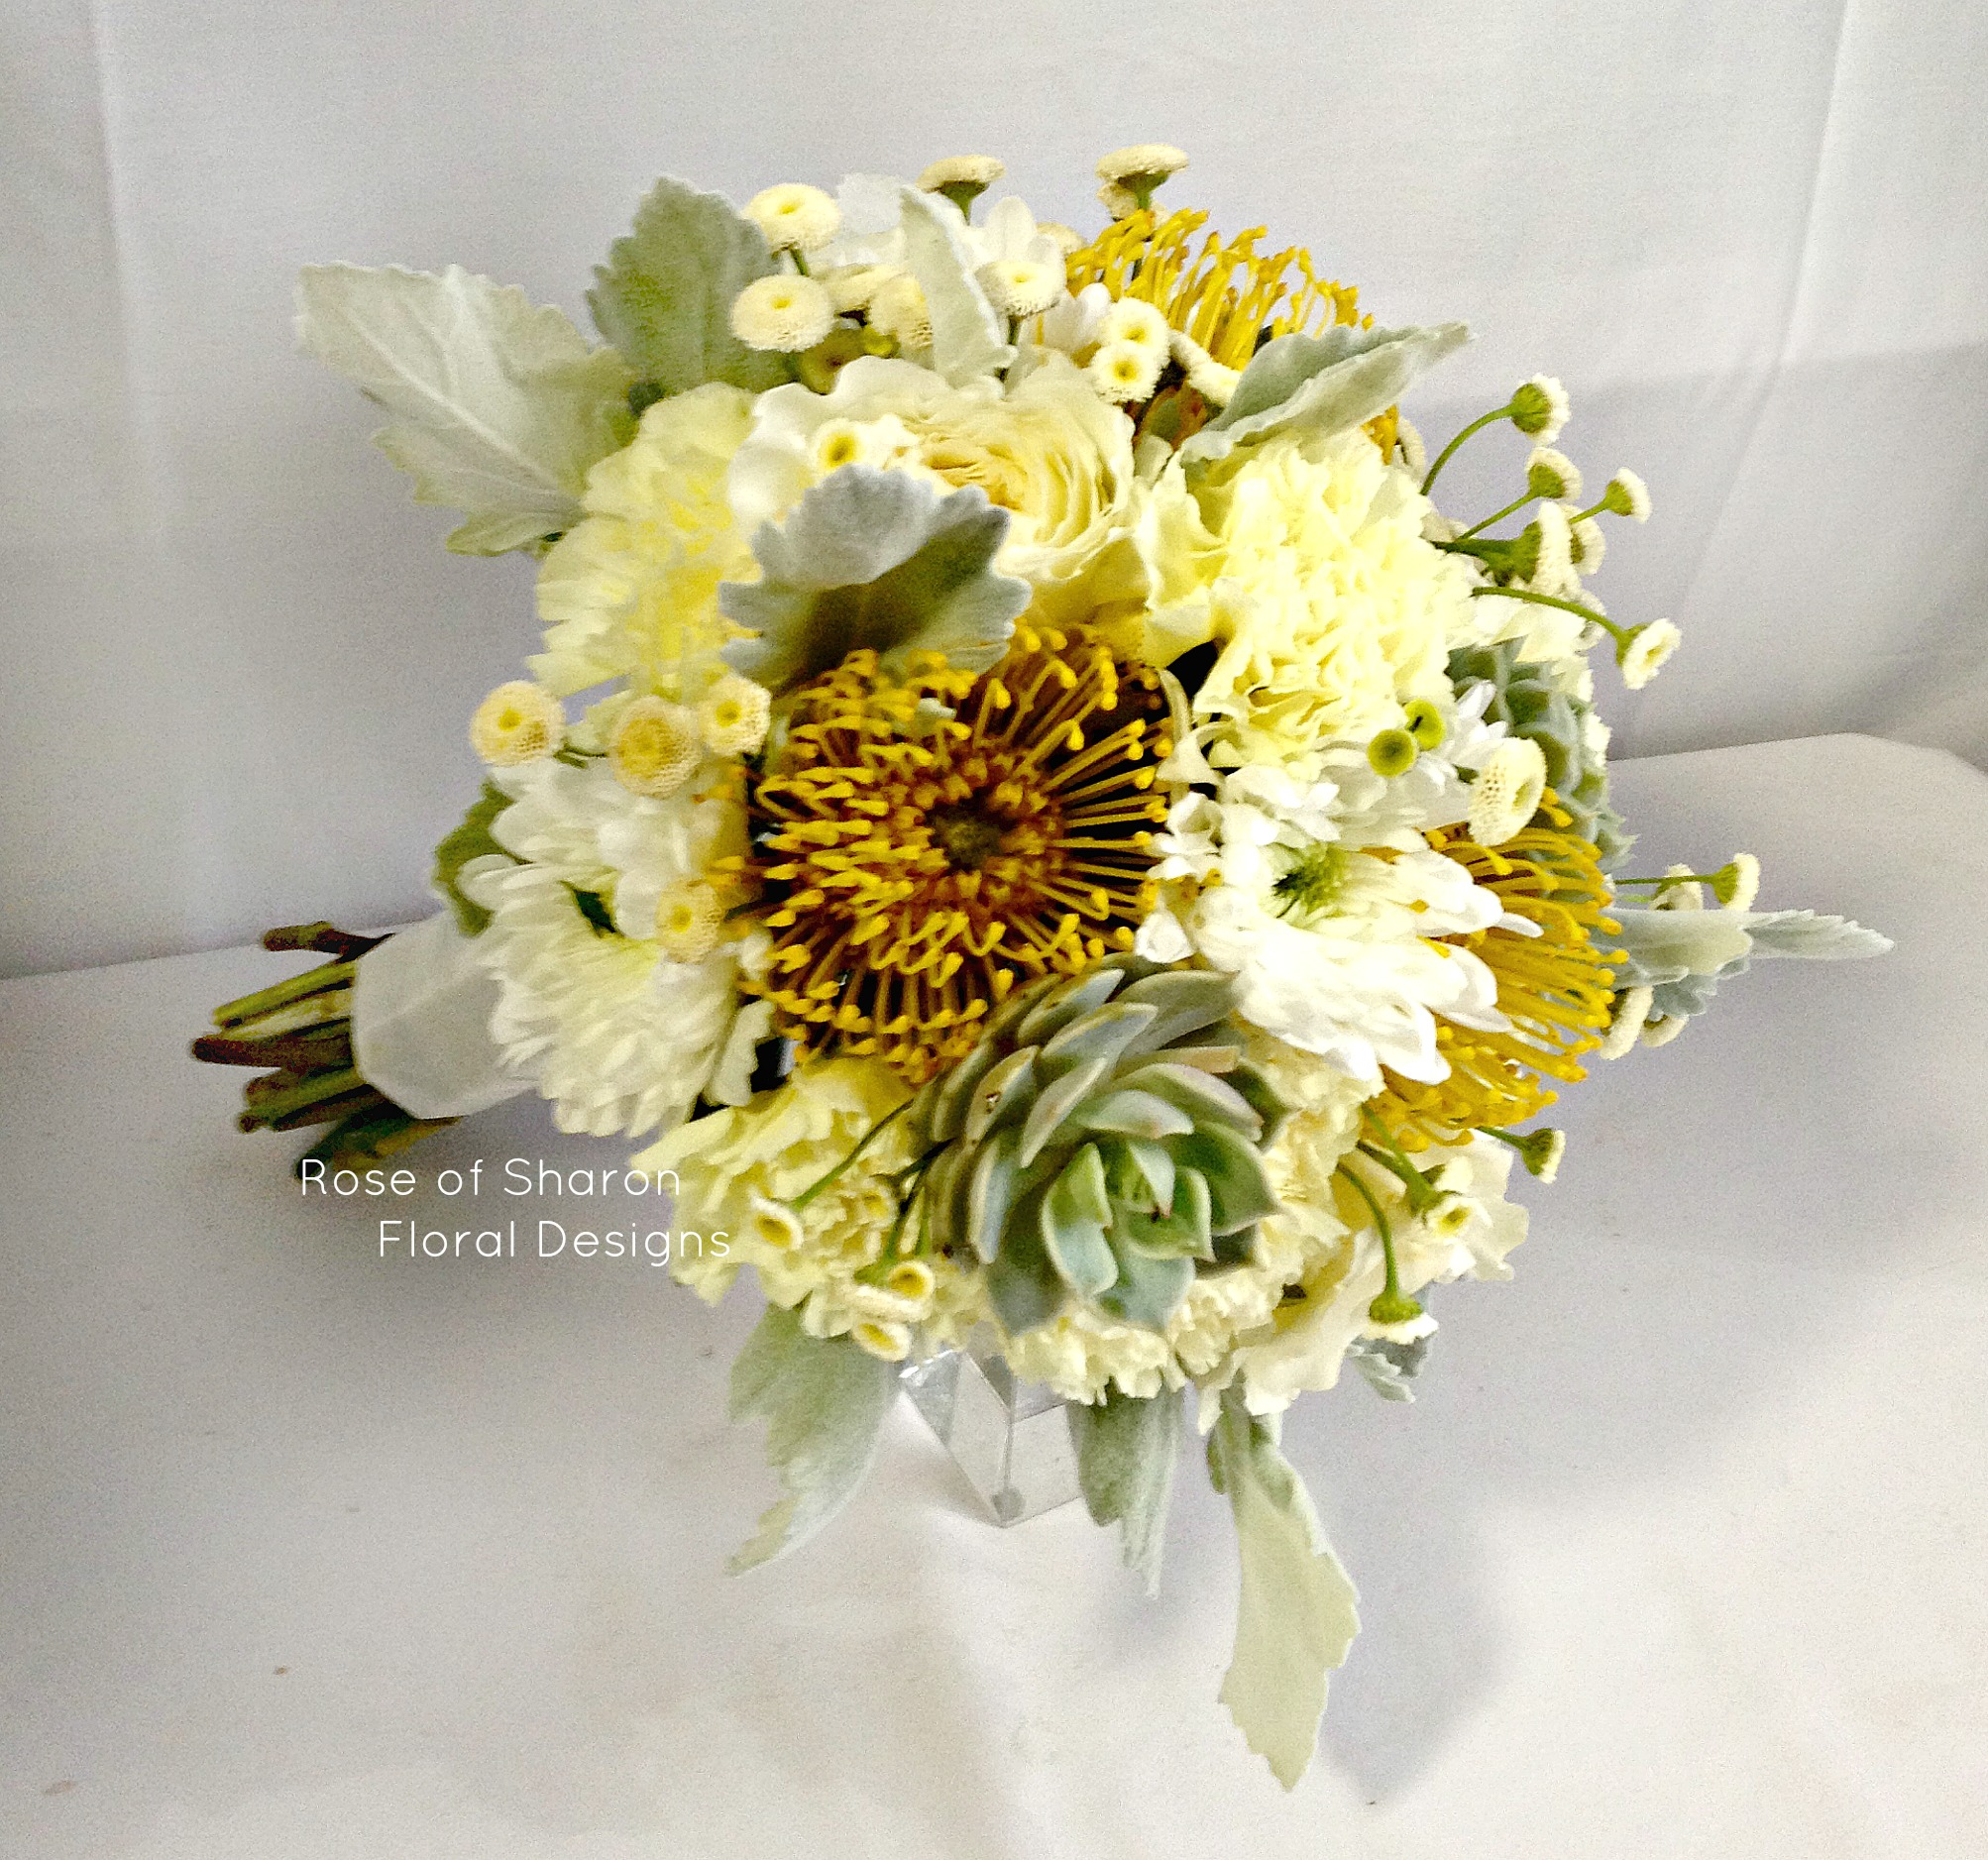 Hand-tied yellow bouquet with pincushion protea & succulents. Rose of Sharon Floral Designs